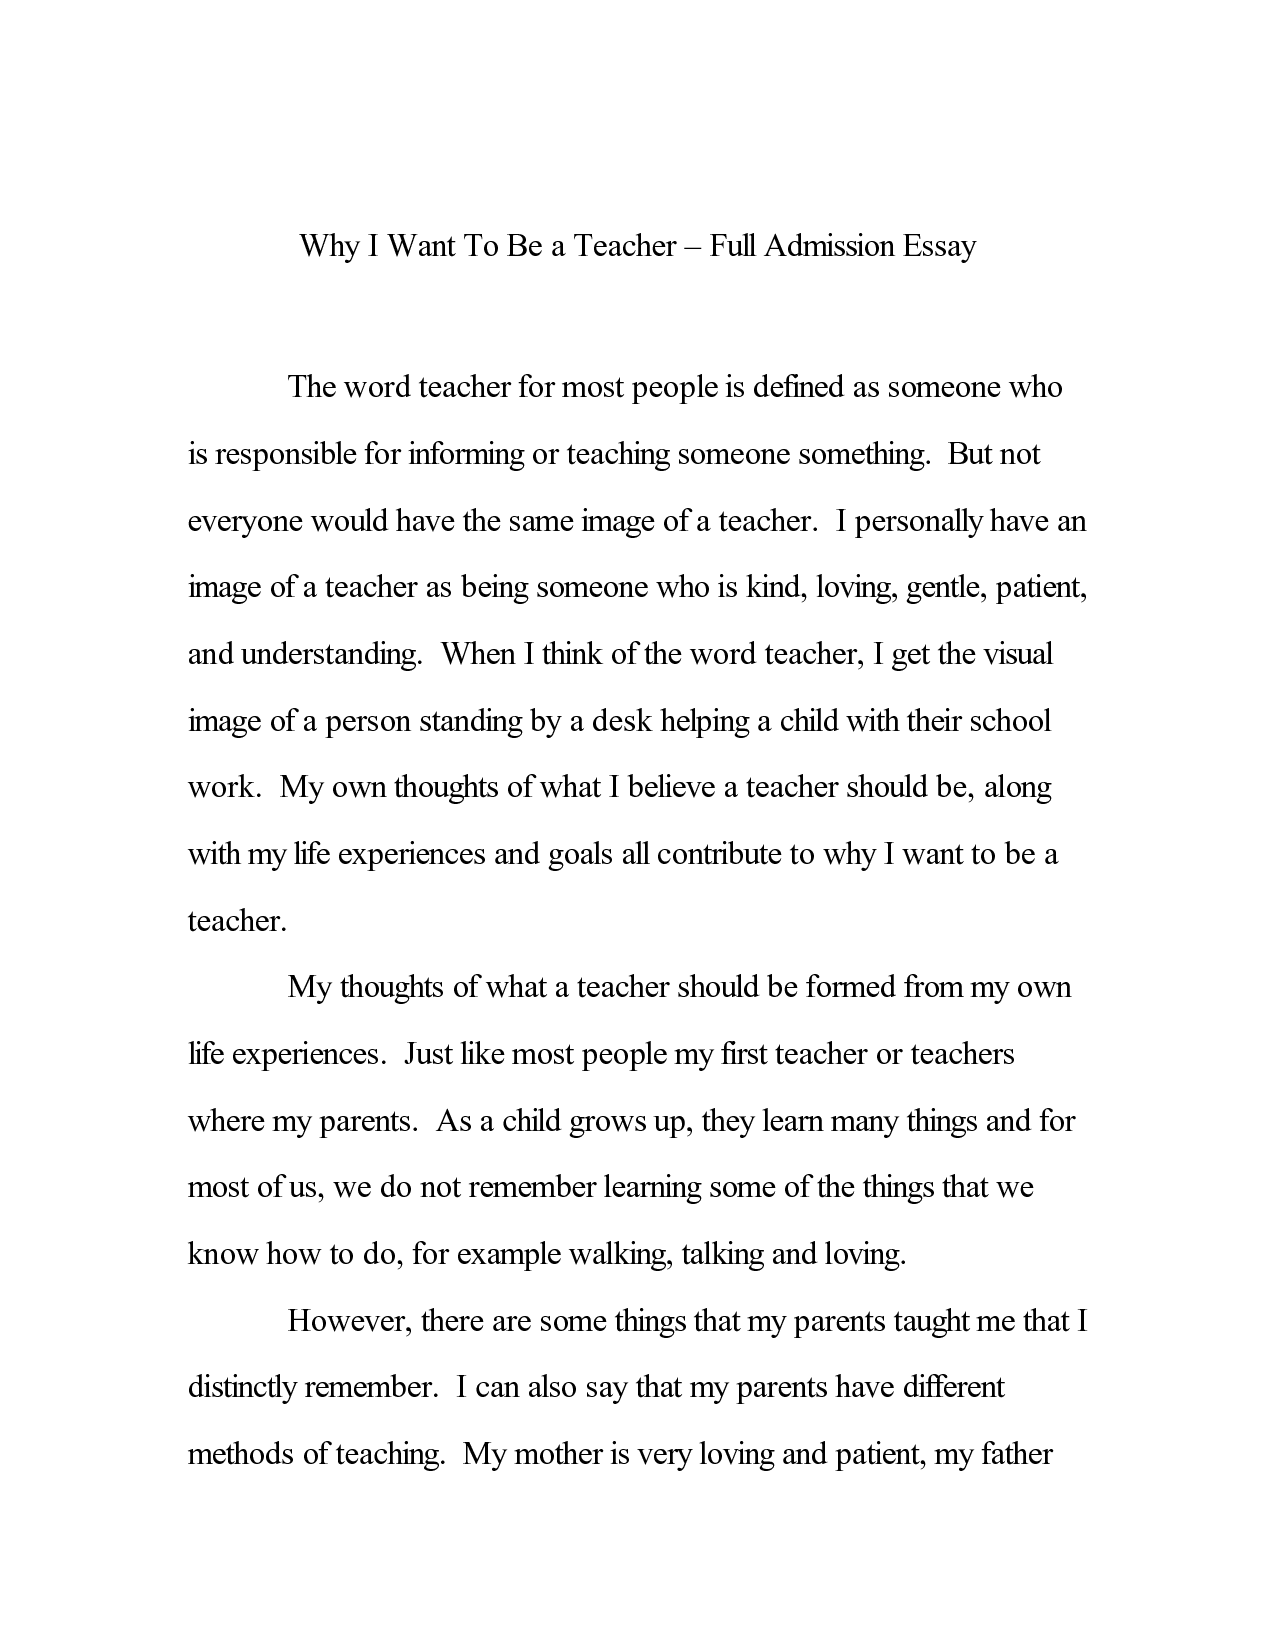 004 Writing College Application Essay Rare A How To Write Outline Tips For Entrance Full